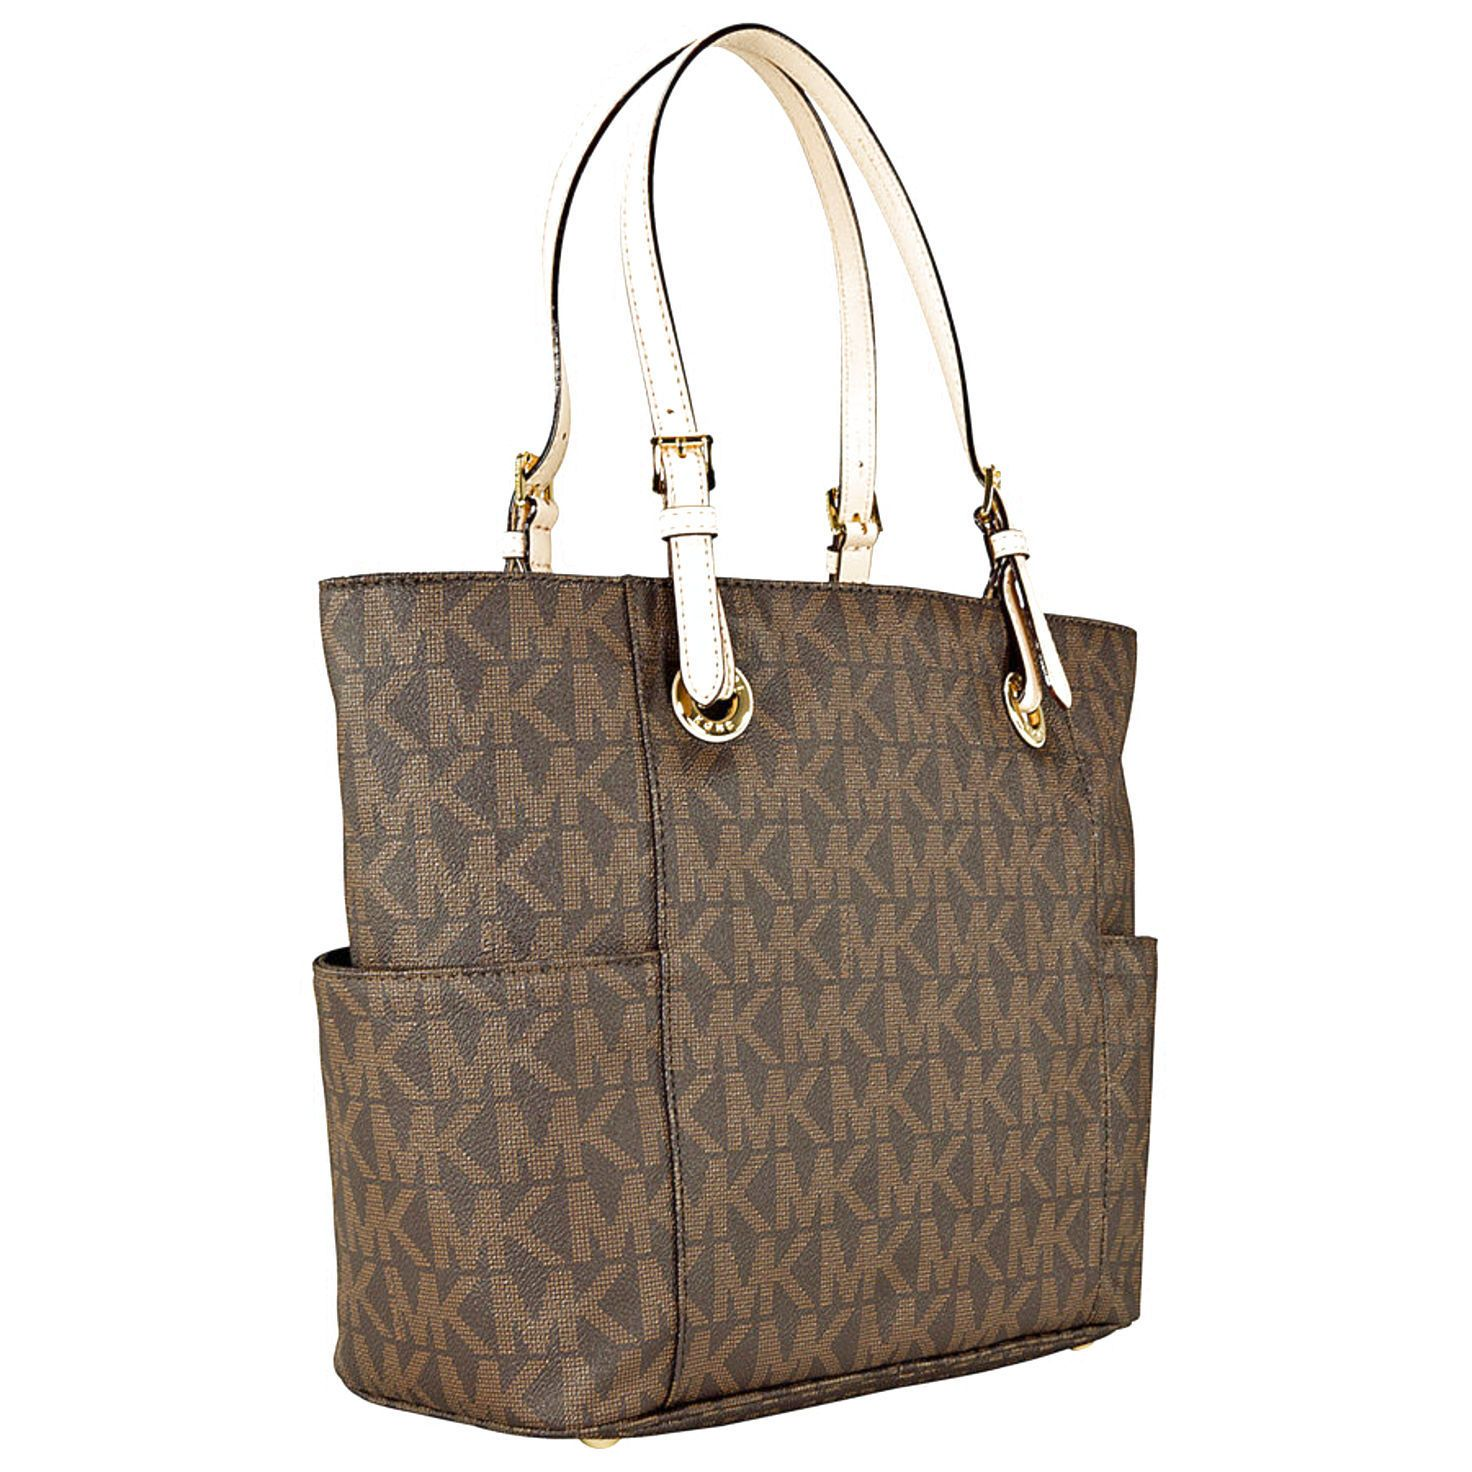 Michael Kors Jet Set Signature Logo Tote In Clothing Shoes Accessories Women S Handbags Bags Purses Ebay